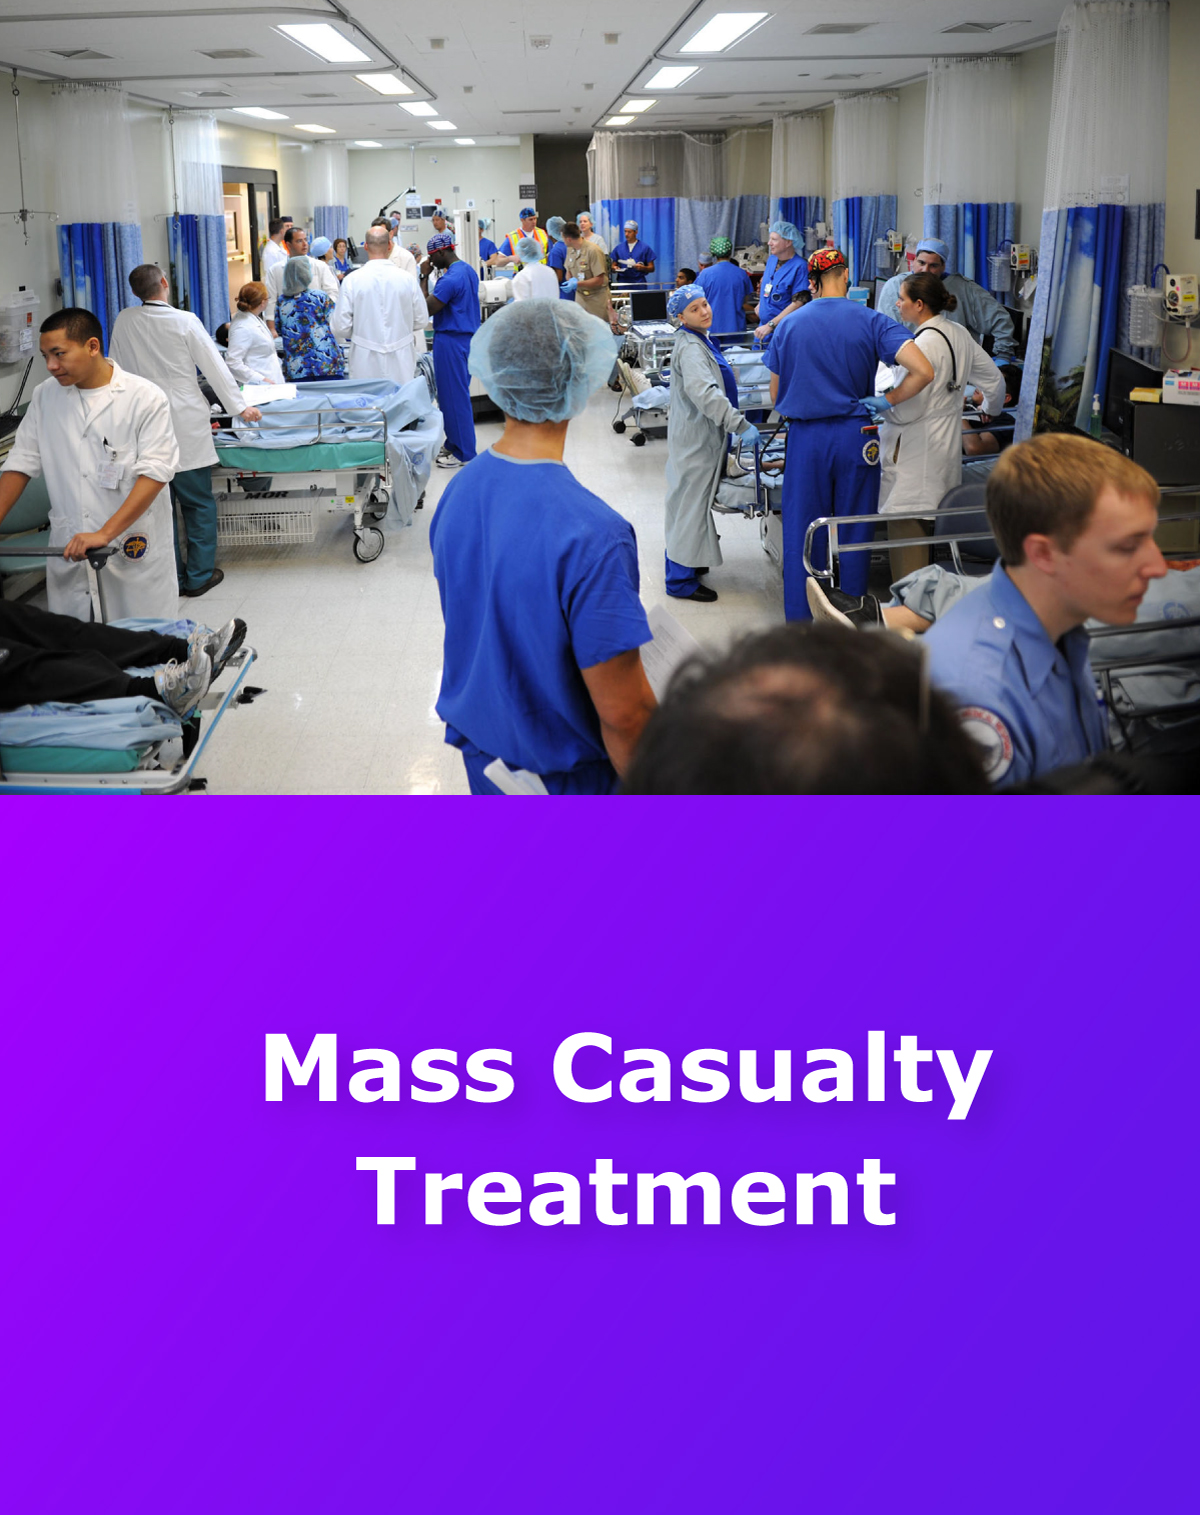 PWD for Mass Casualty Treatment